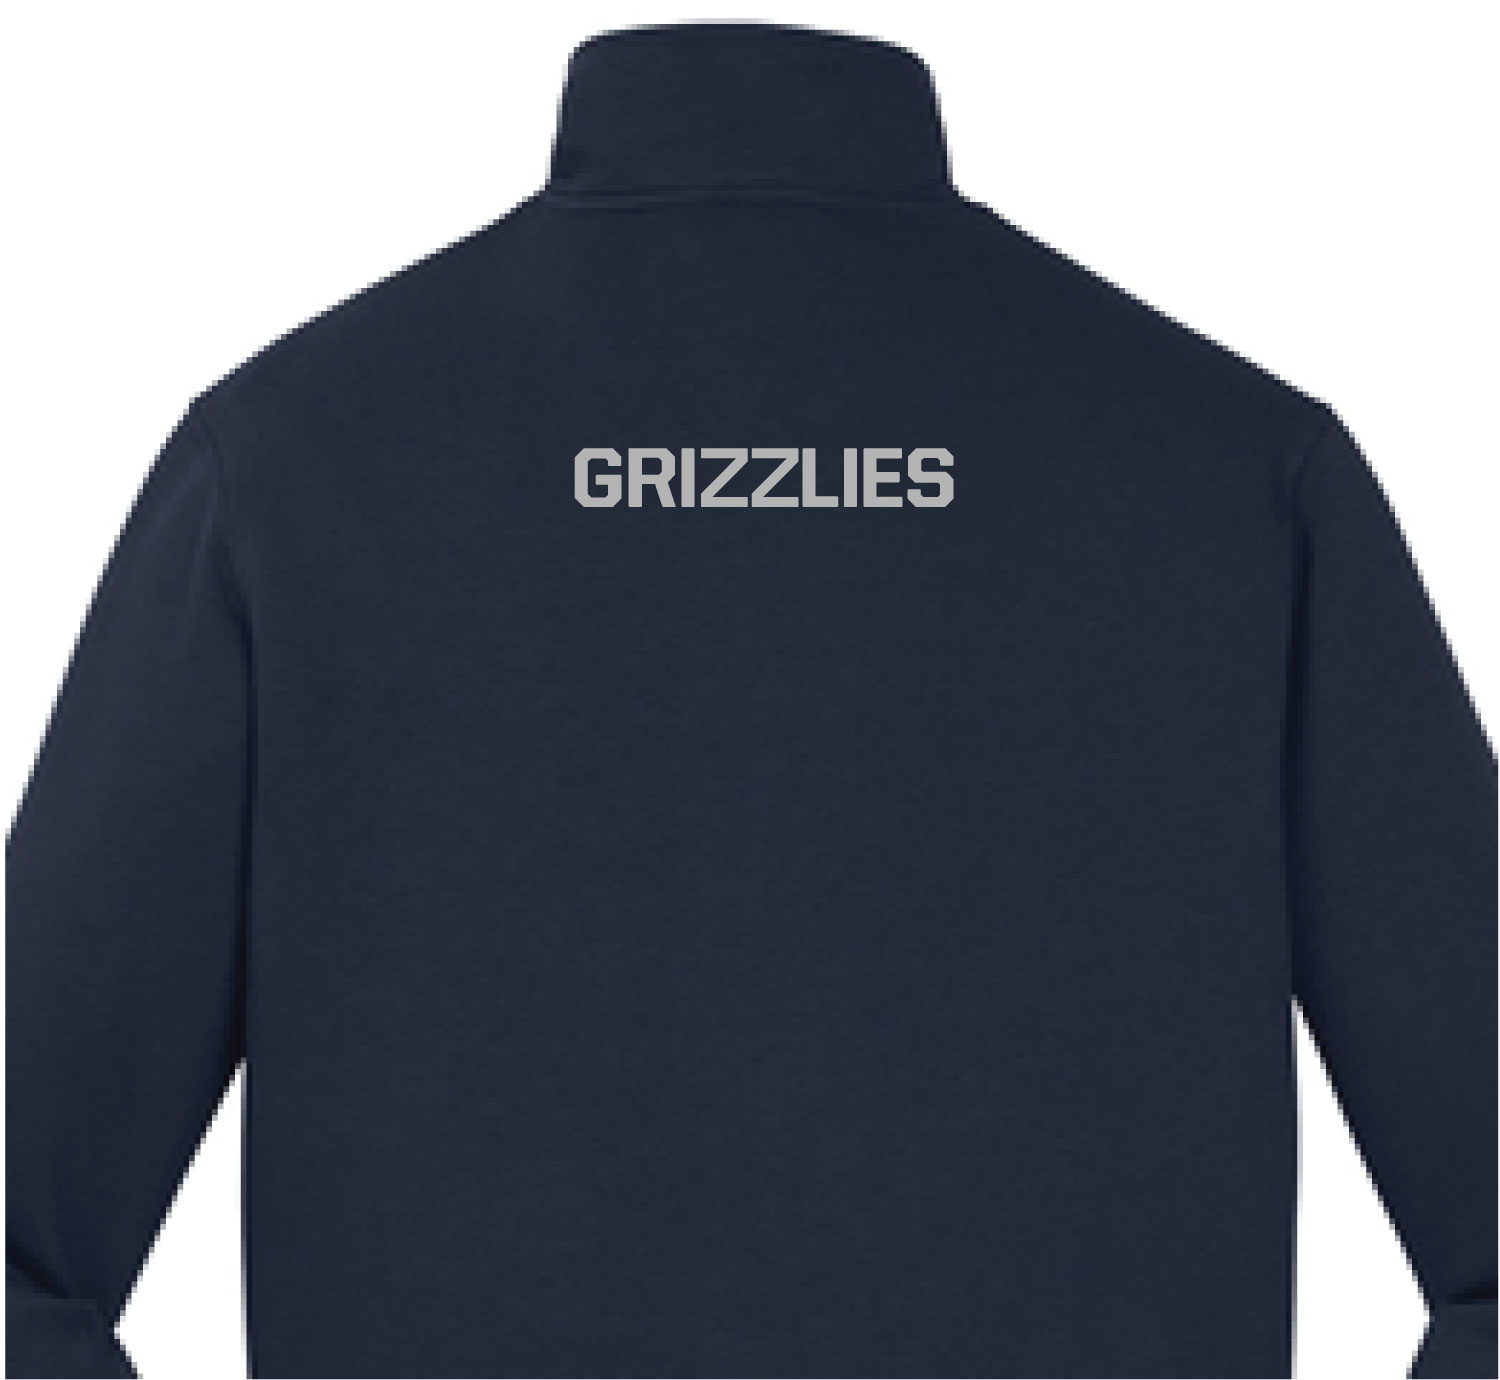 CHXC Copper Hills Grizzlies Cross Country - Reflective Logo -Team ... cd869b7040e2c